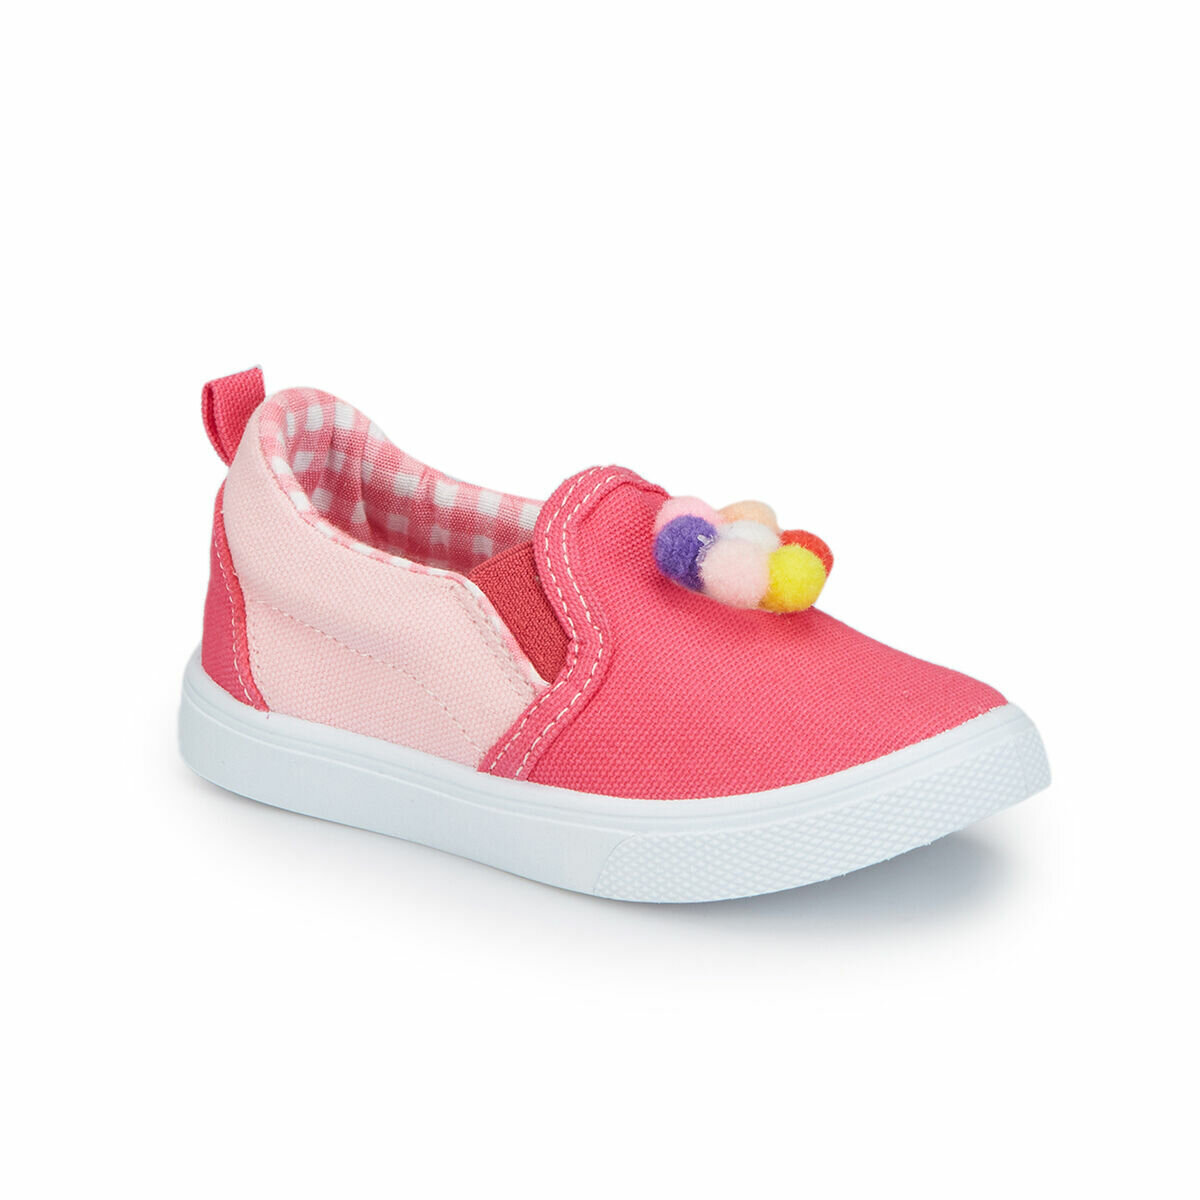 FLO 81.510337.B Fuchsia Girl Kids Slip On Shoes Polaris